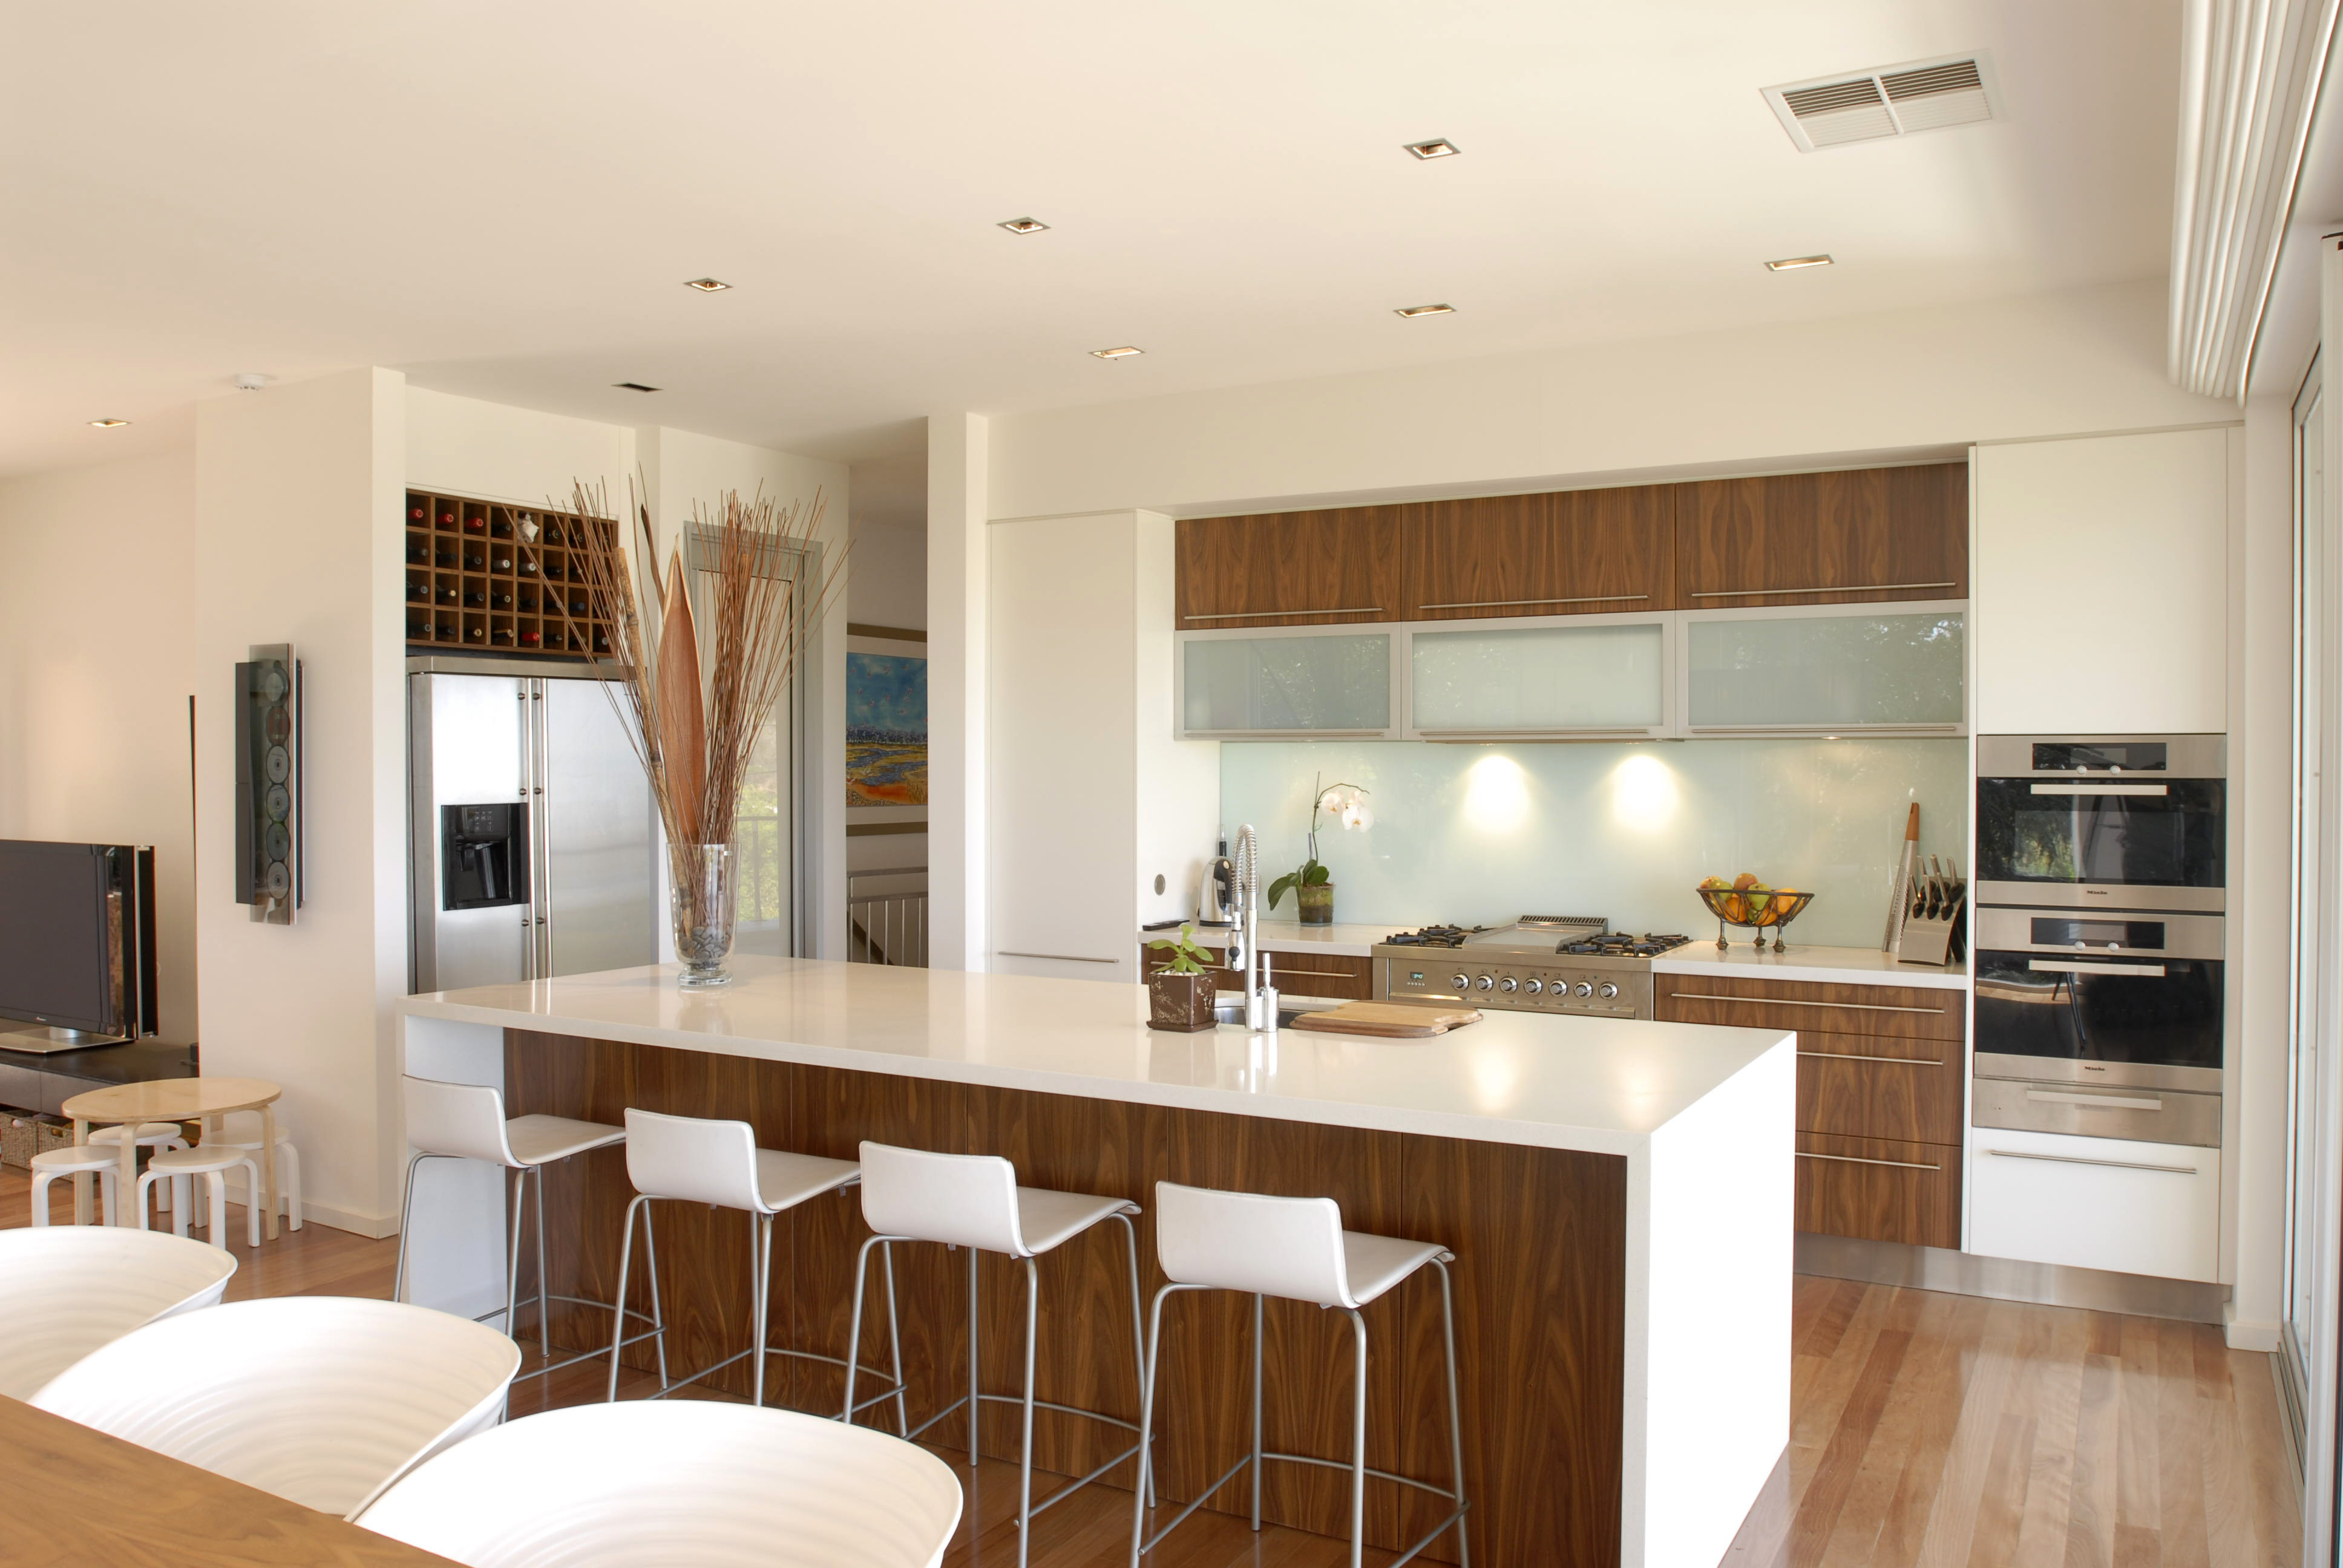 Interior design service residential for Residential interior designs